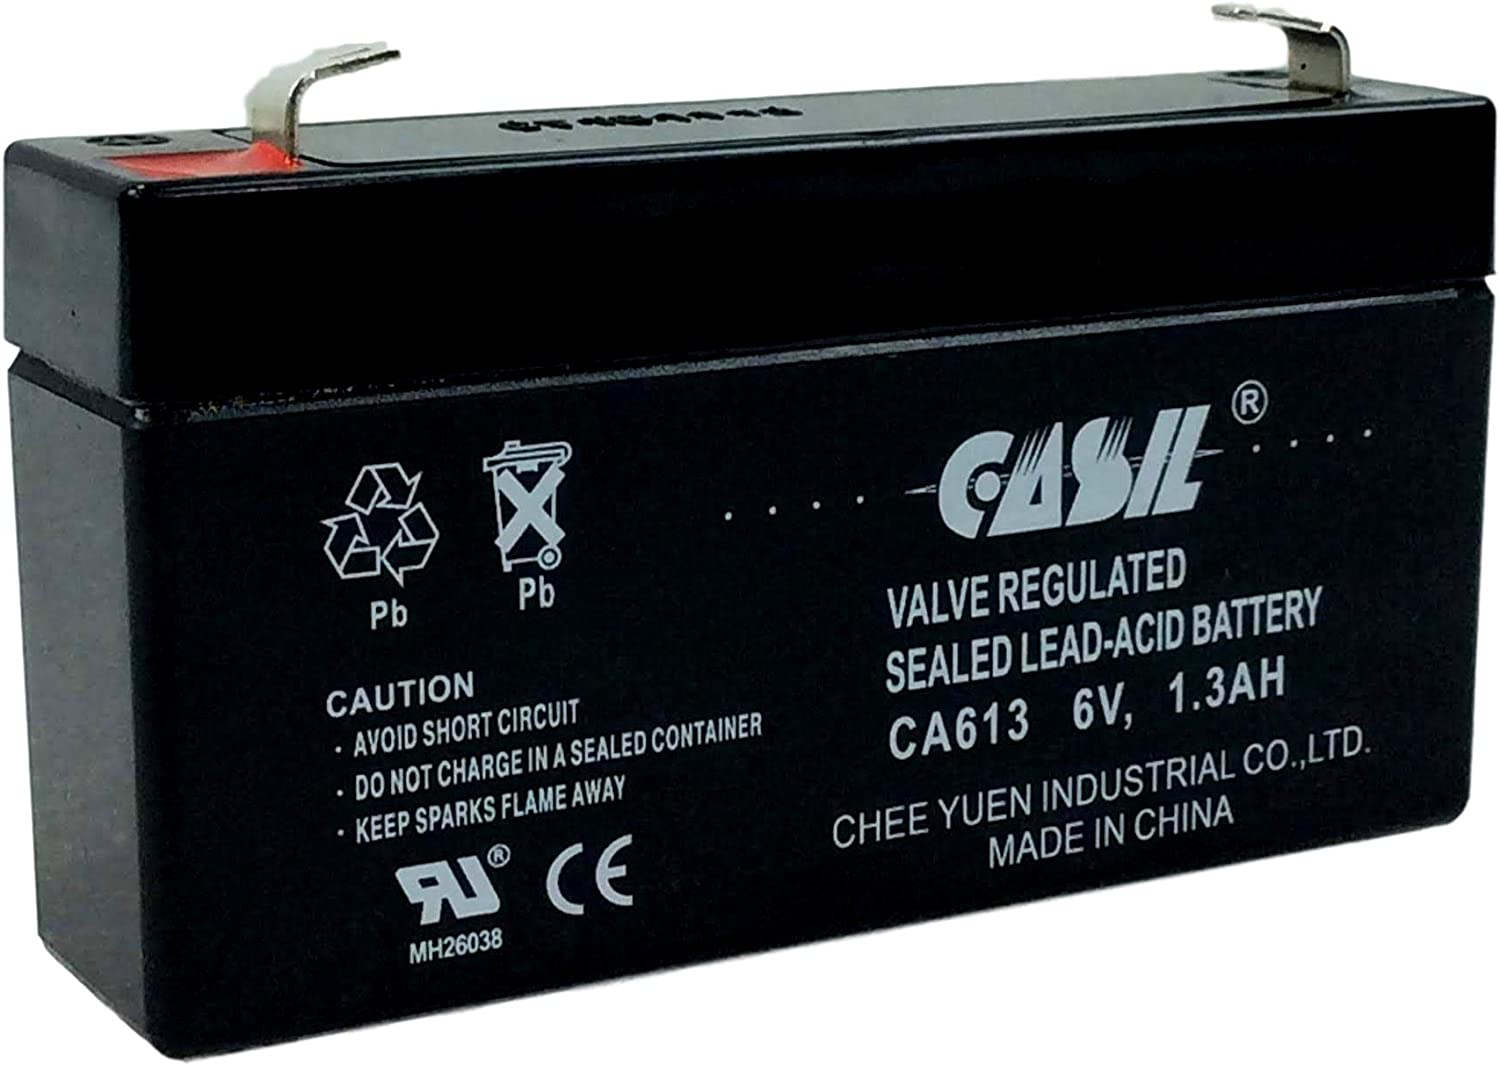 6v 1.3ah ge 600-1054-95r Simon xt Rechargeable AGM Sealed Lead Acid Battery by Casil CA613